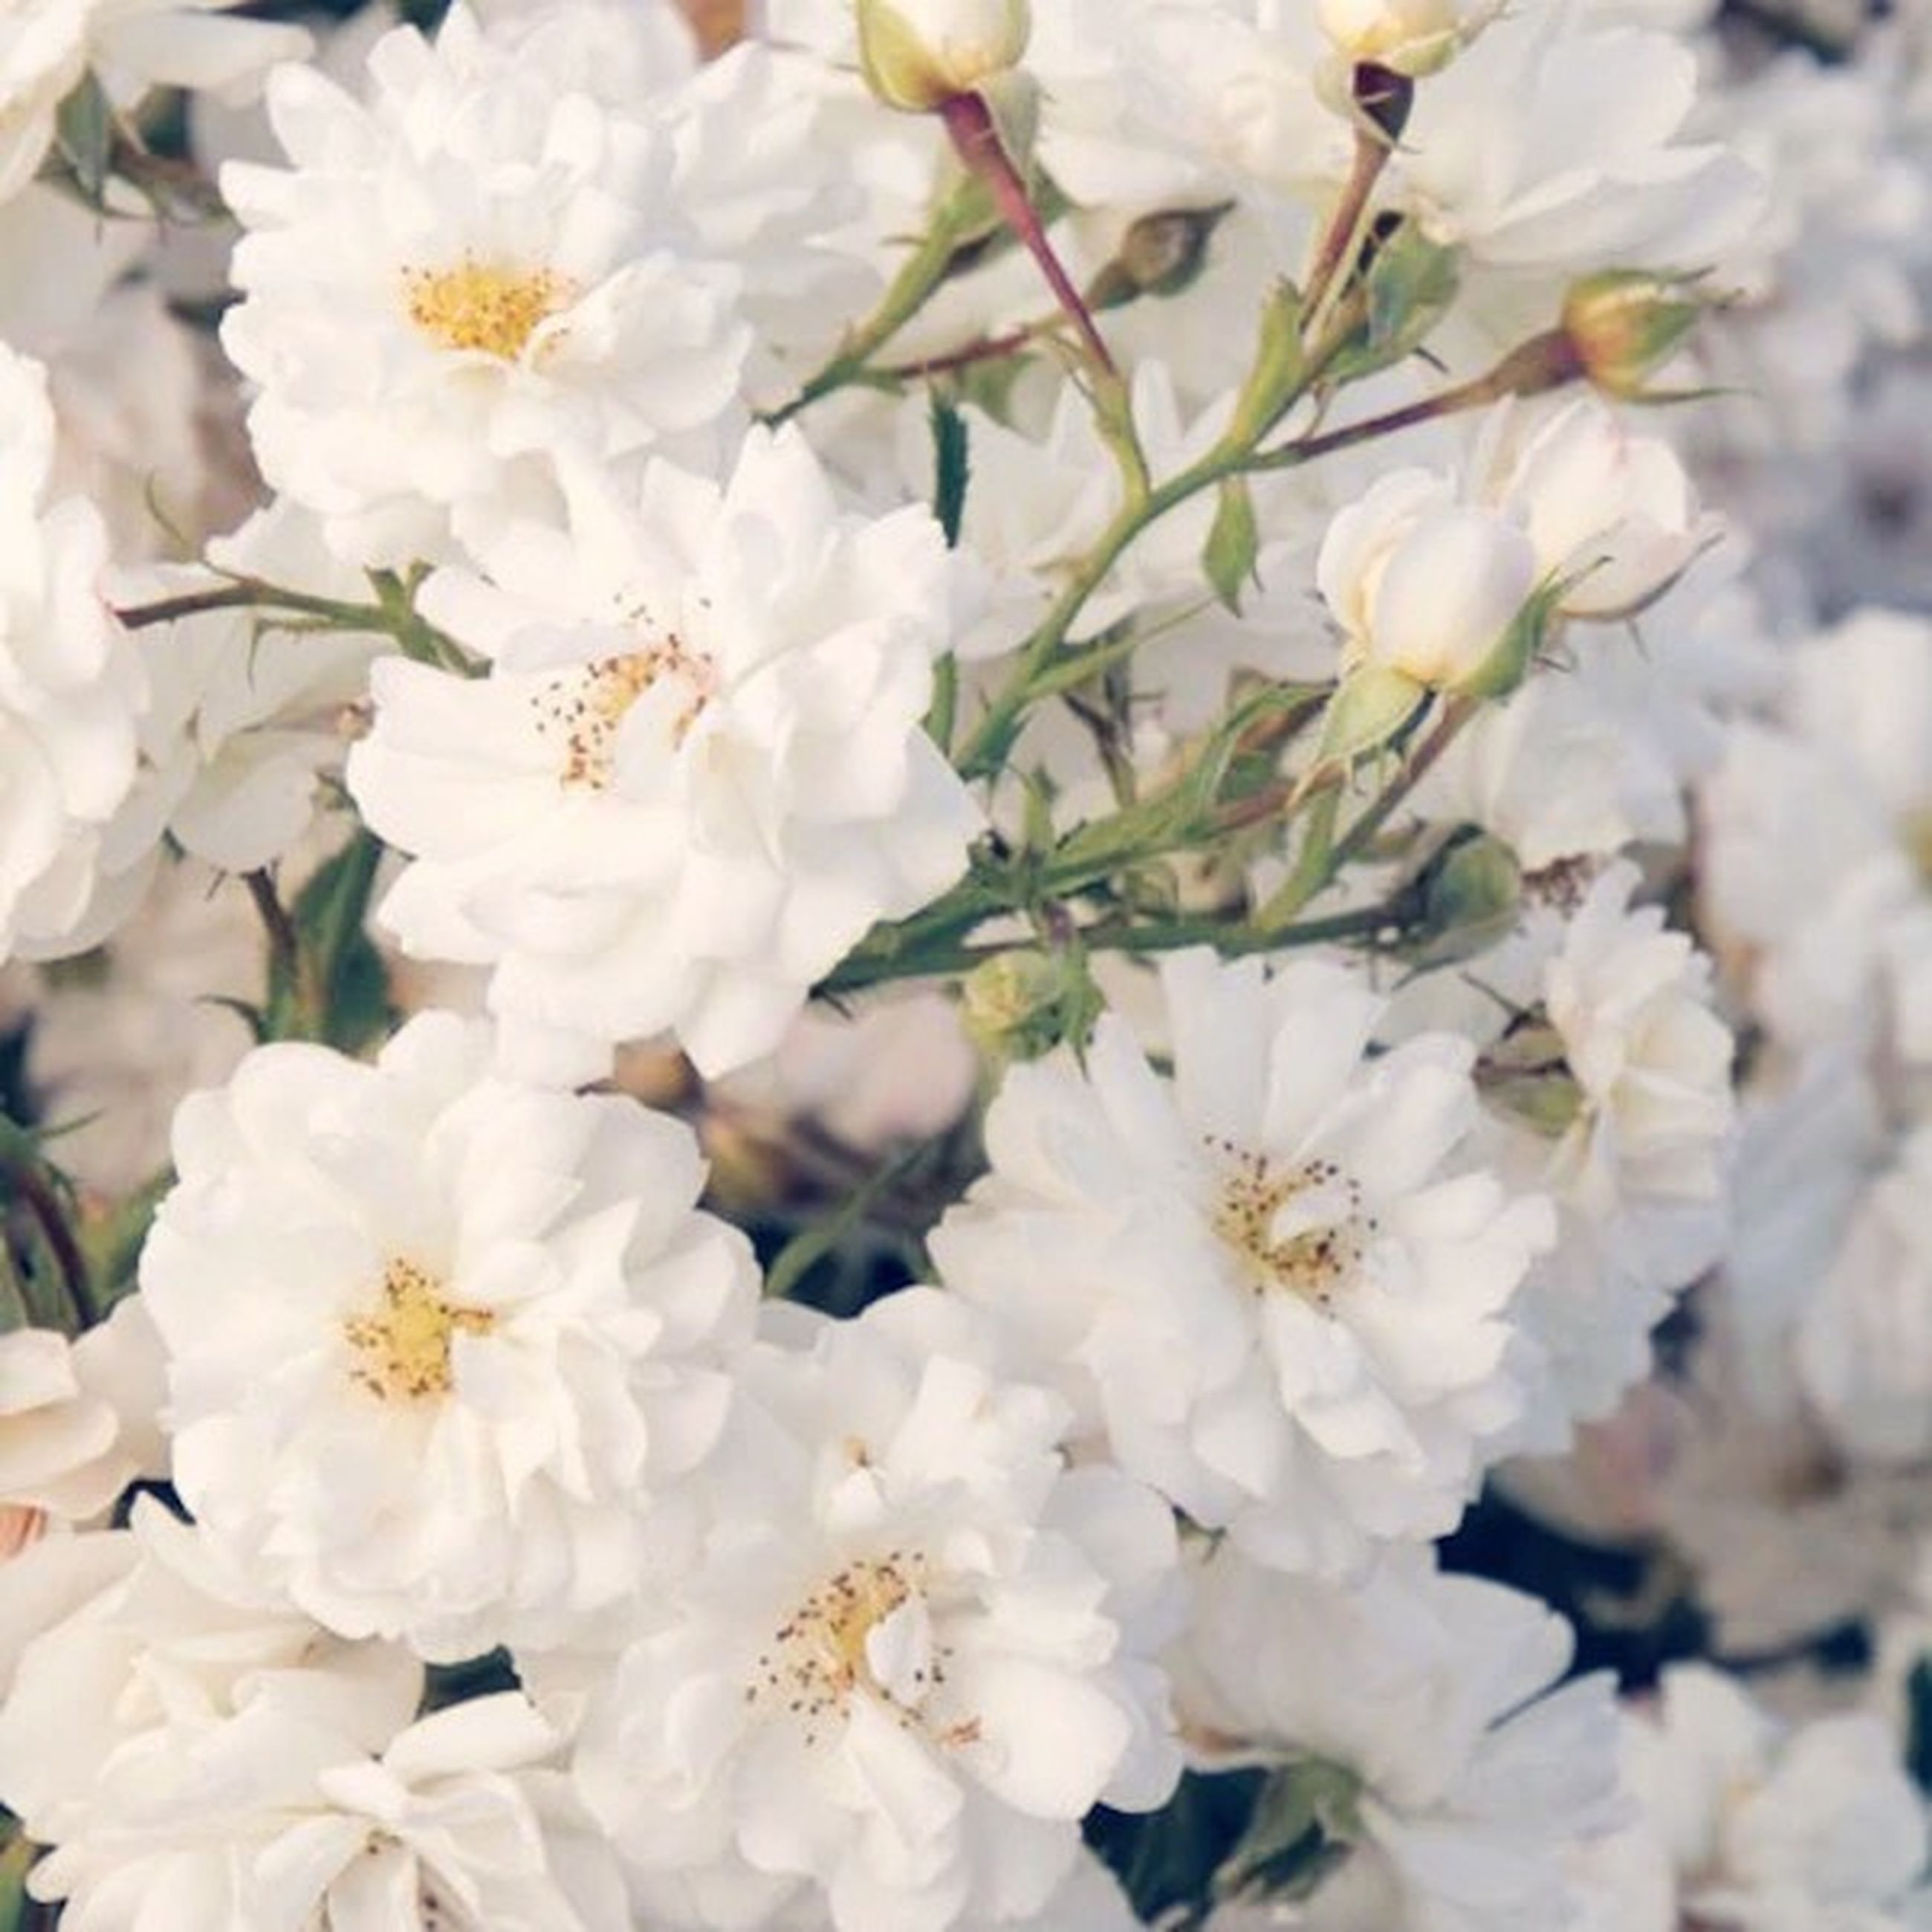 flower, freshness, fragility, white color, petal, growth, beauty in nature, flower head, nature, blossom, blooming, close-up, in bloom, focus on foreground, cherry blossom, botany, white, backgrounds, stamen, pollen